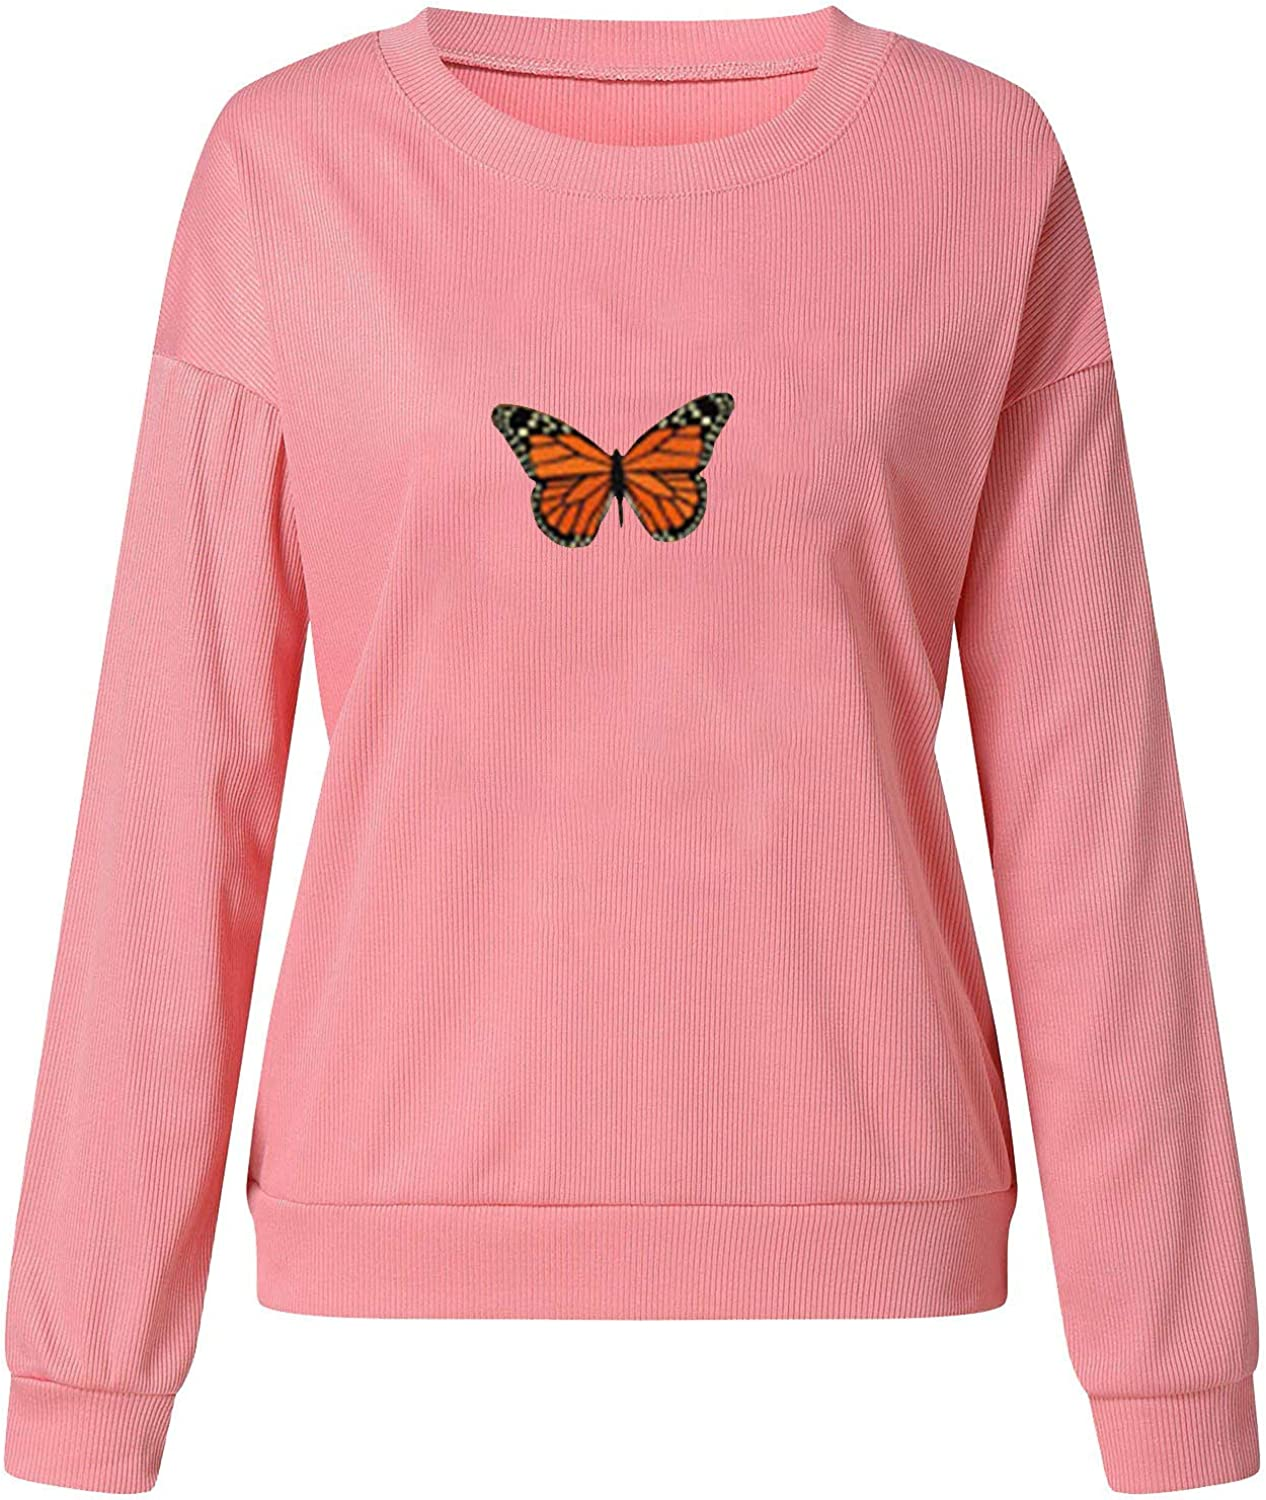 Hubl Women's Fashion Solid Color Butterfly Print Sweater Long Sleeves Tops